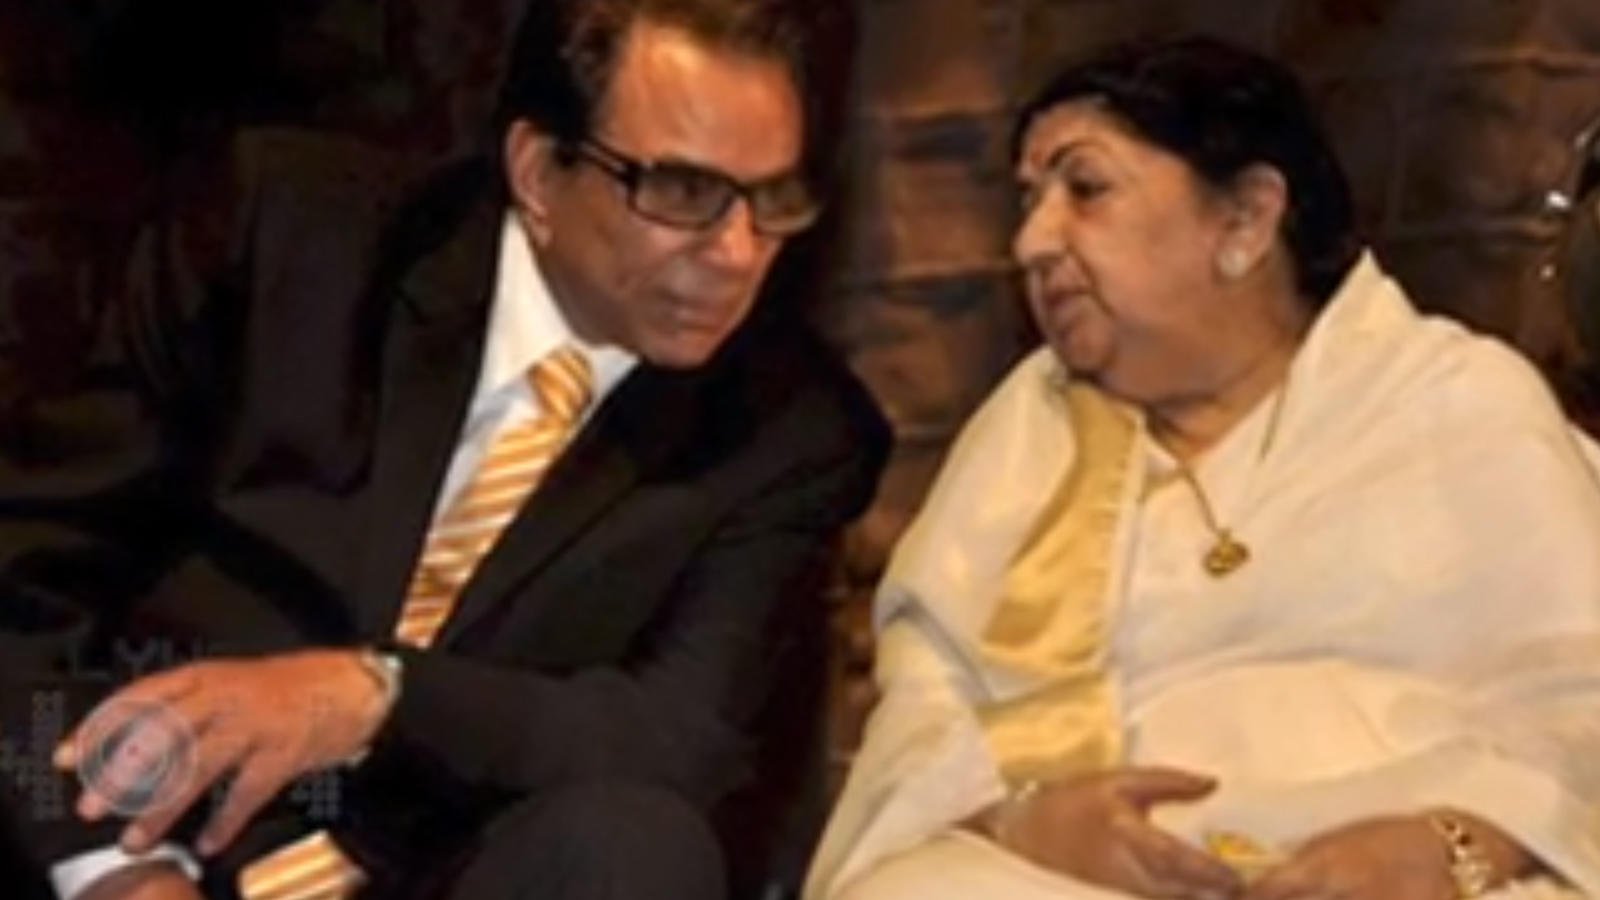 Veteran actor Dharmendra gets emotional over Lata Mangeshkar's health,  shares old picture | Hindi Movie News - Bollywood - Times of India